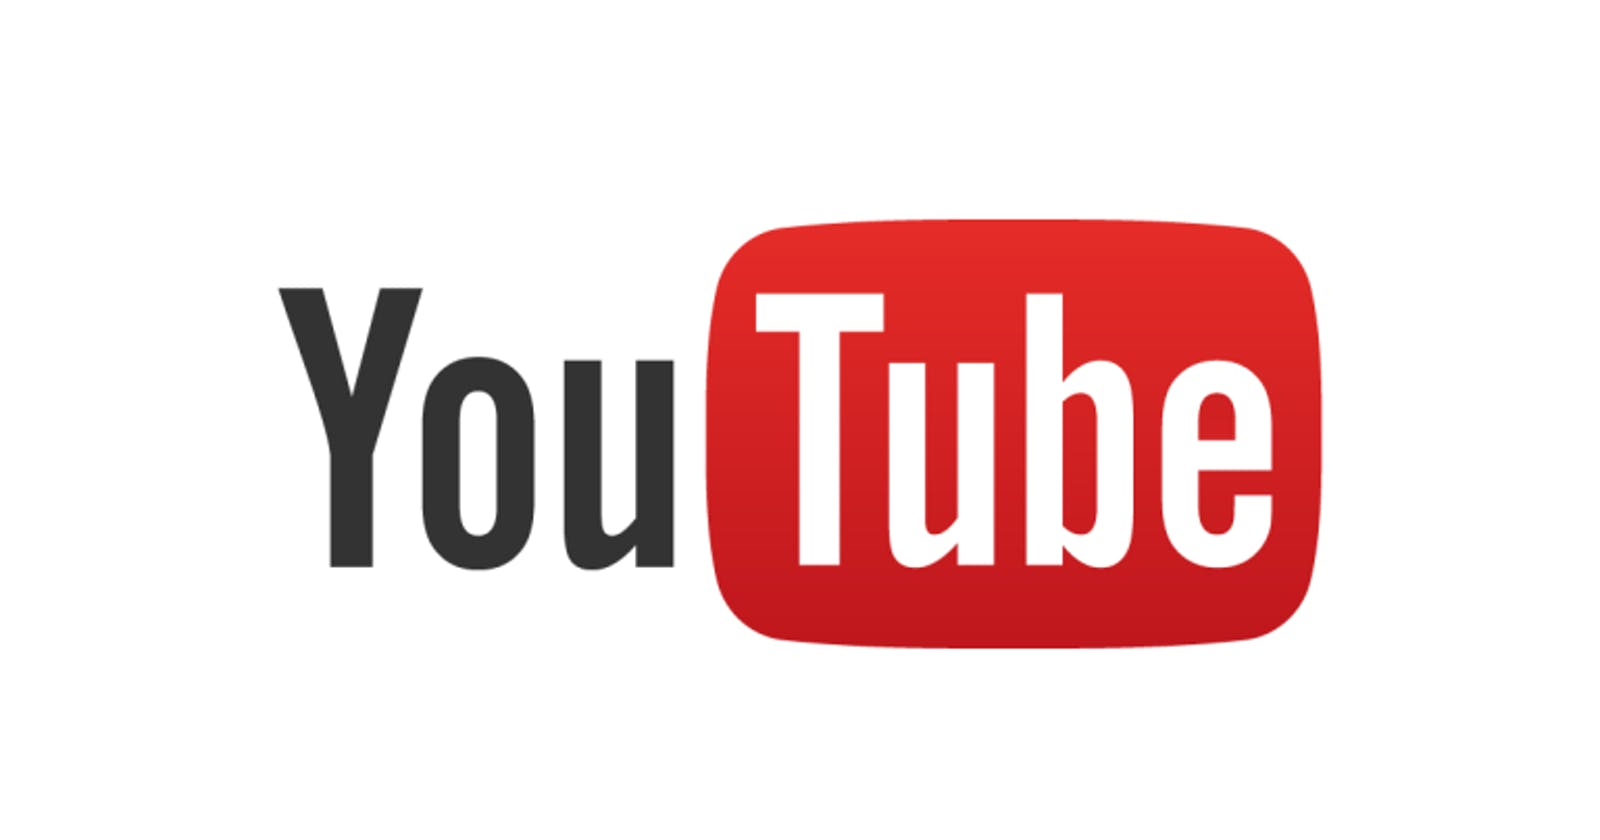 How to get Youtube Video Title from url programatically